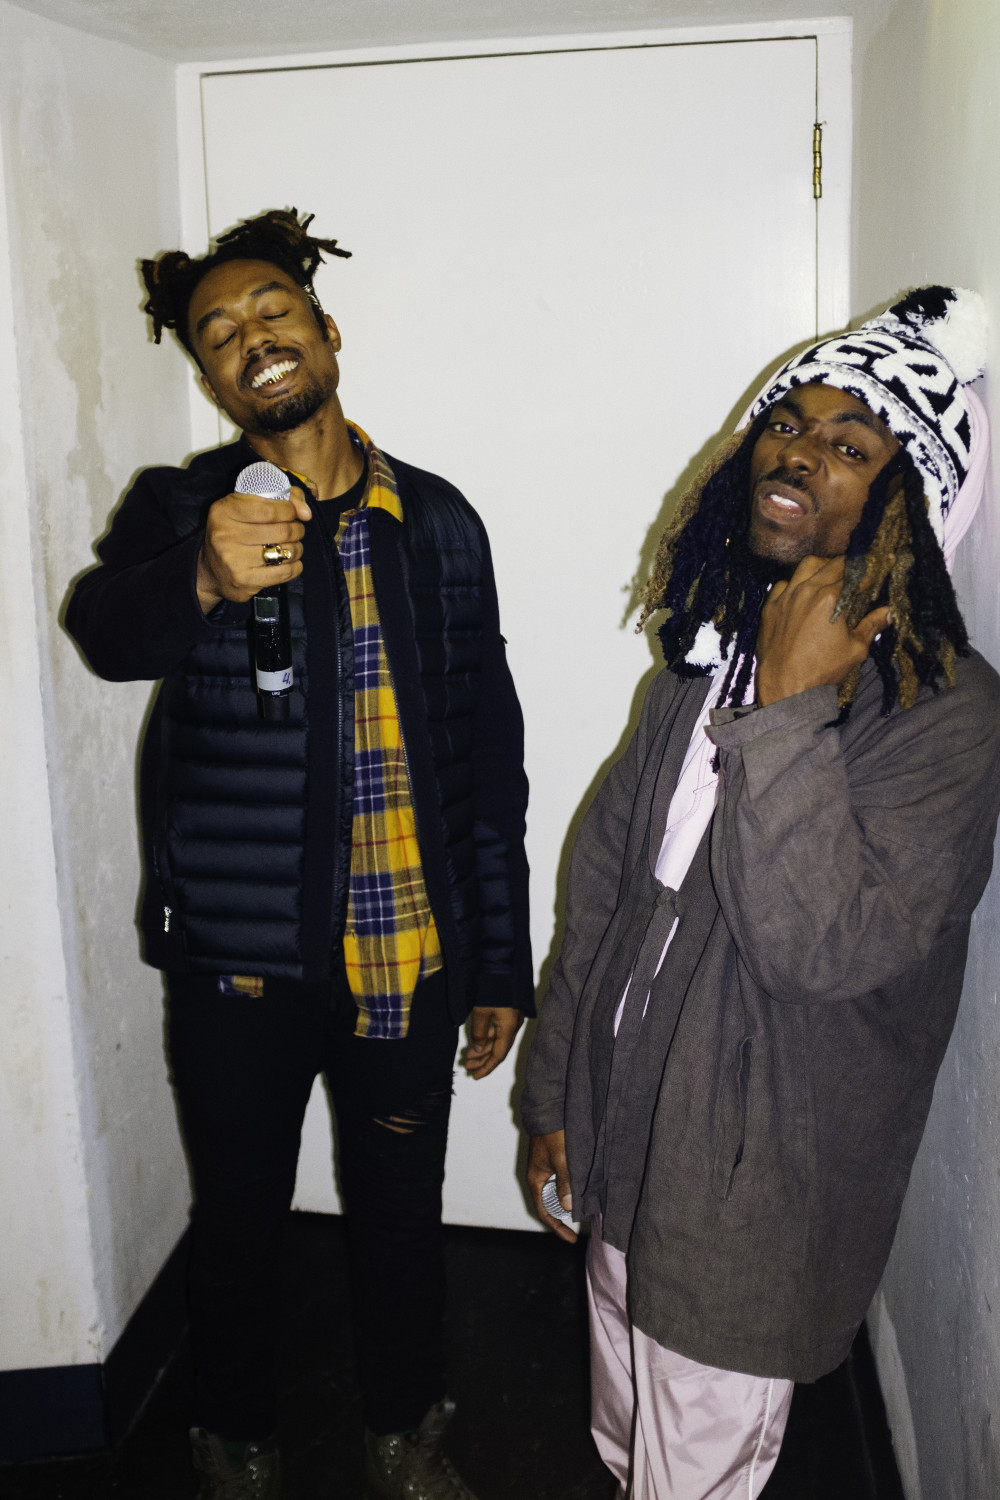 EARTHGANG IS ONE WORD